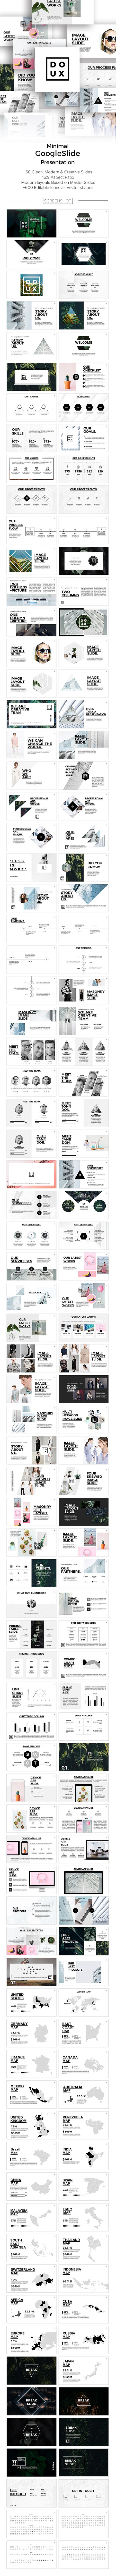 Best Powerpoint  Keynote  Google Slide Template Images On